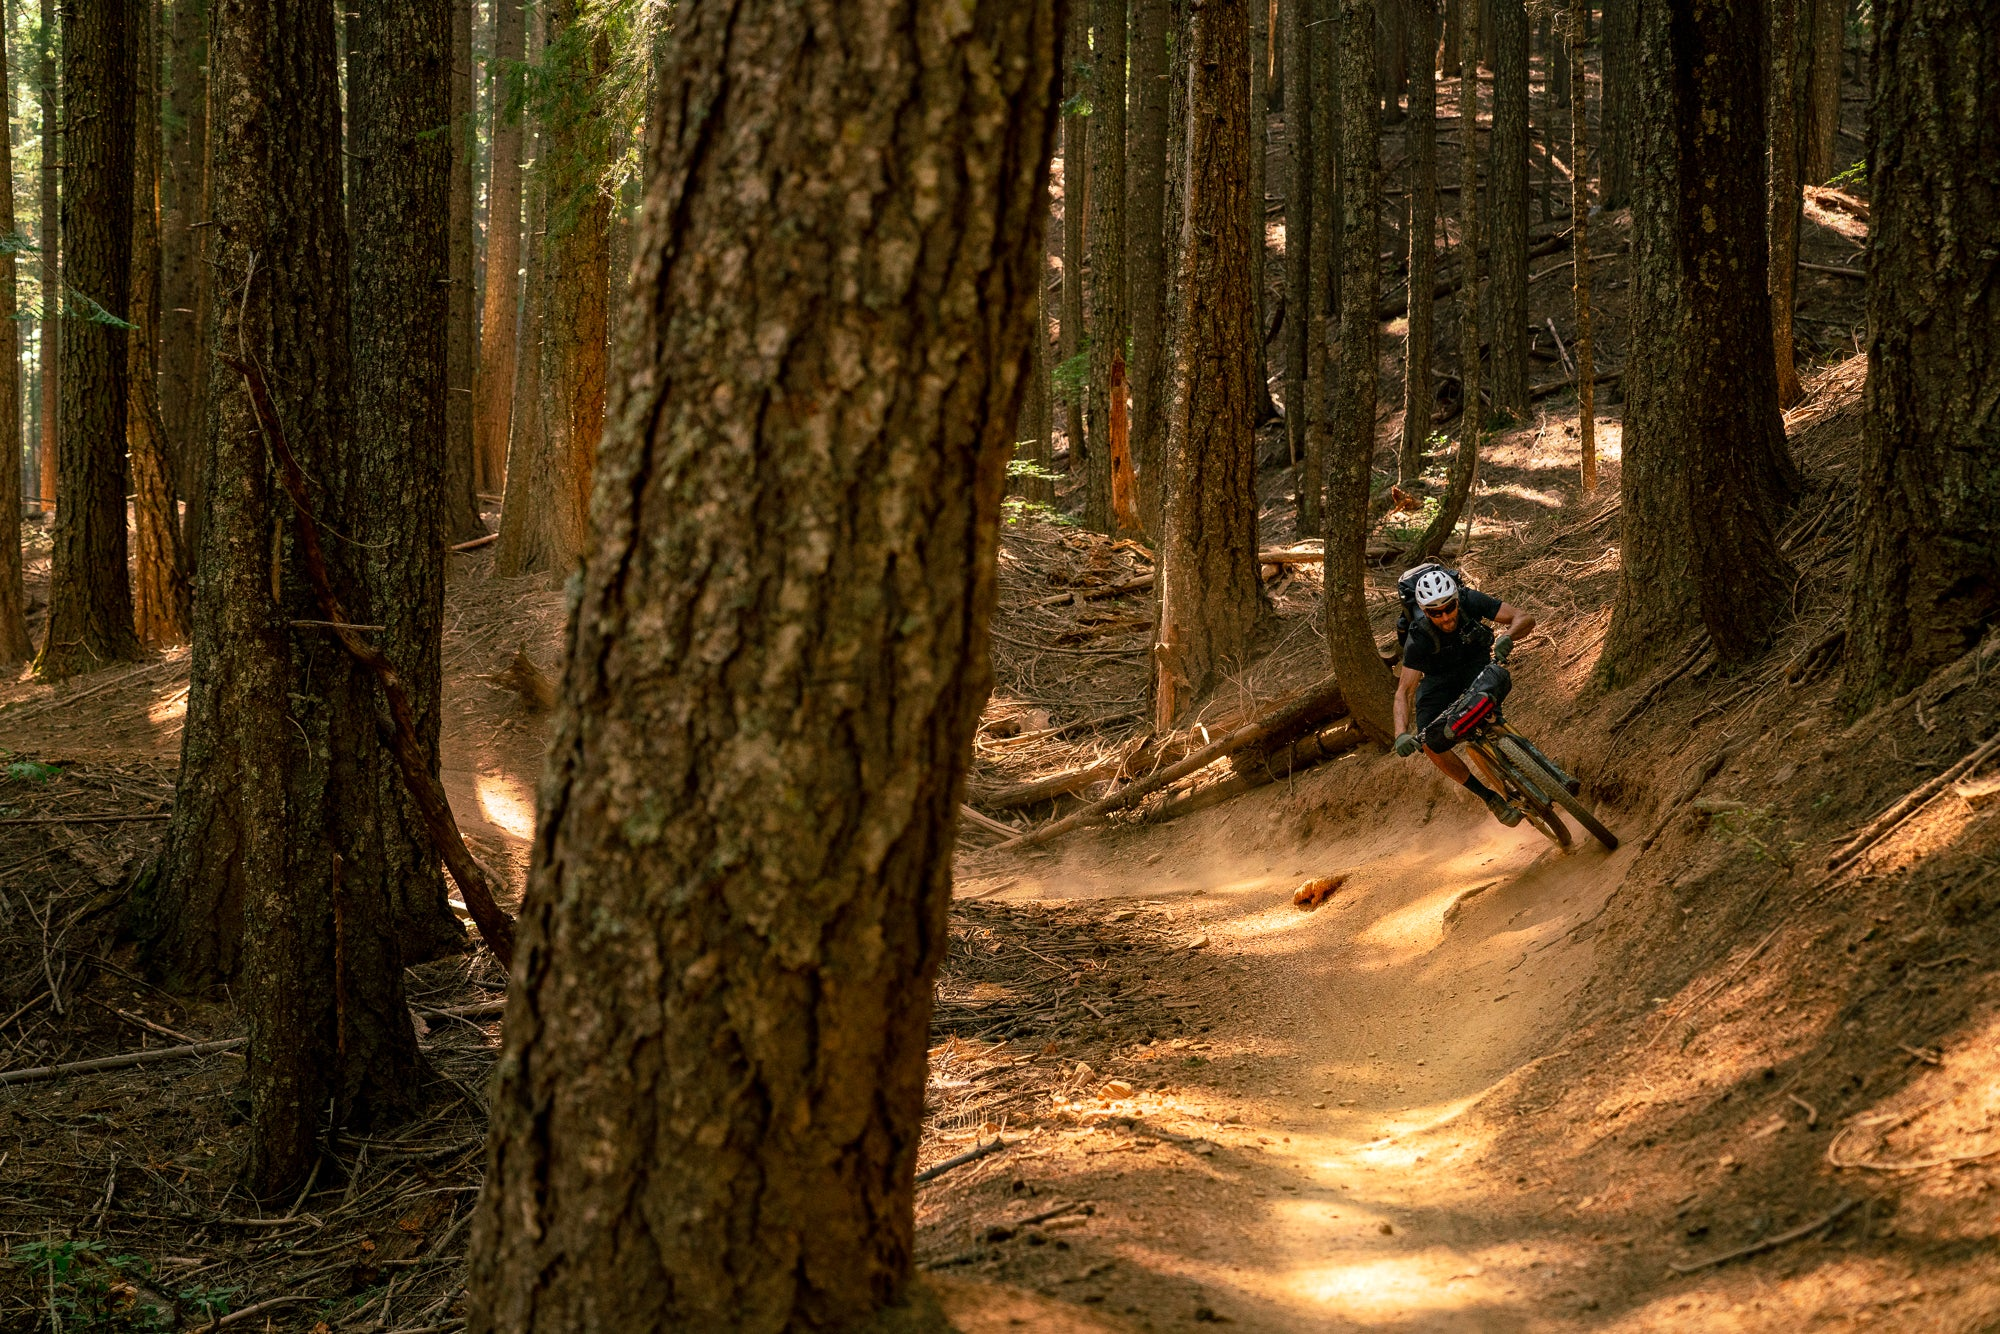 Mountain Biker Riding through the Forest